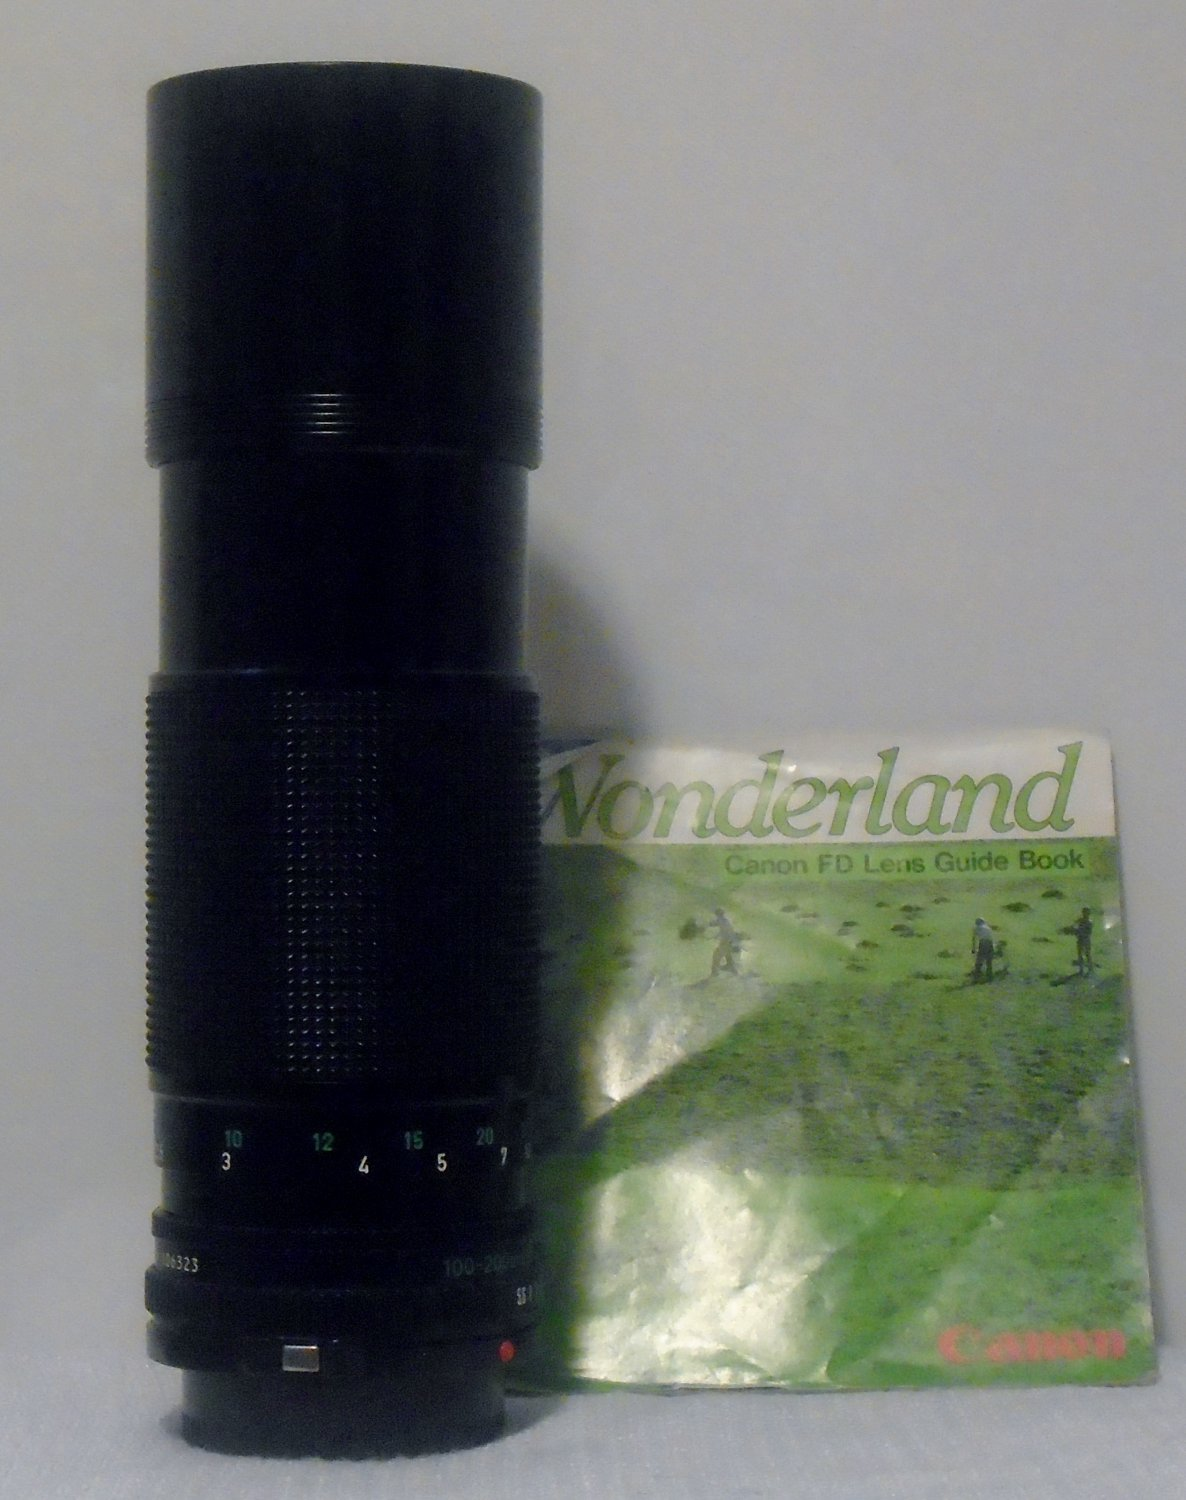 Canon Zoom Lens FD 100-200mm 1:5.6, Made In Japan With Case